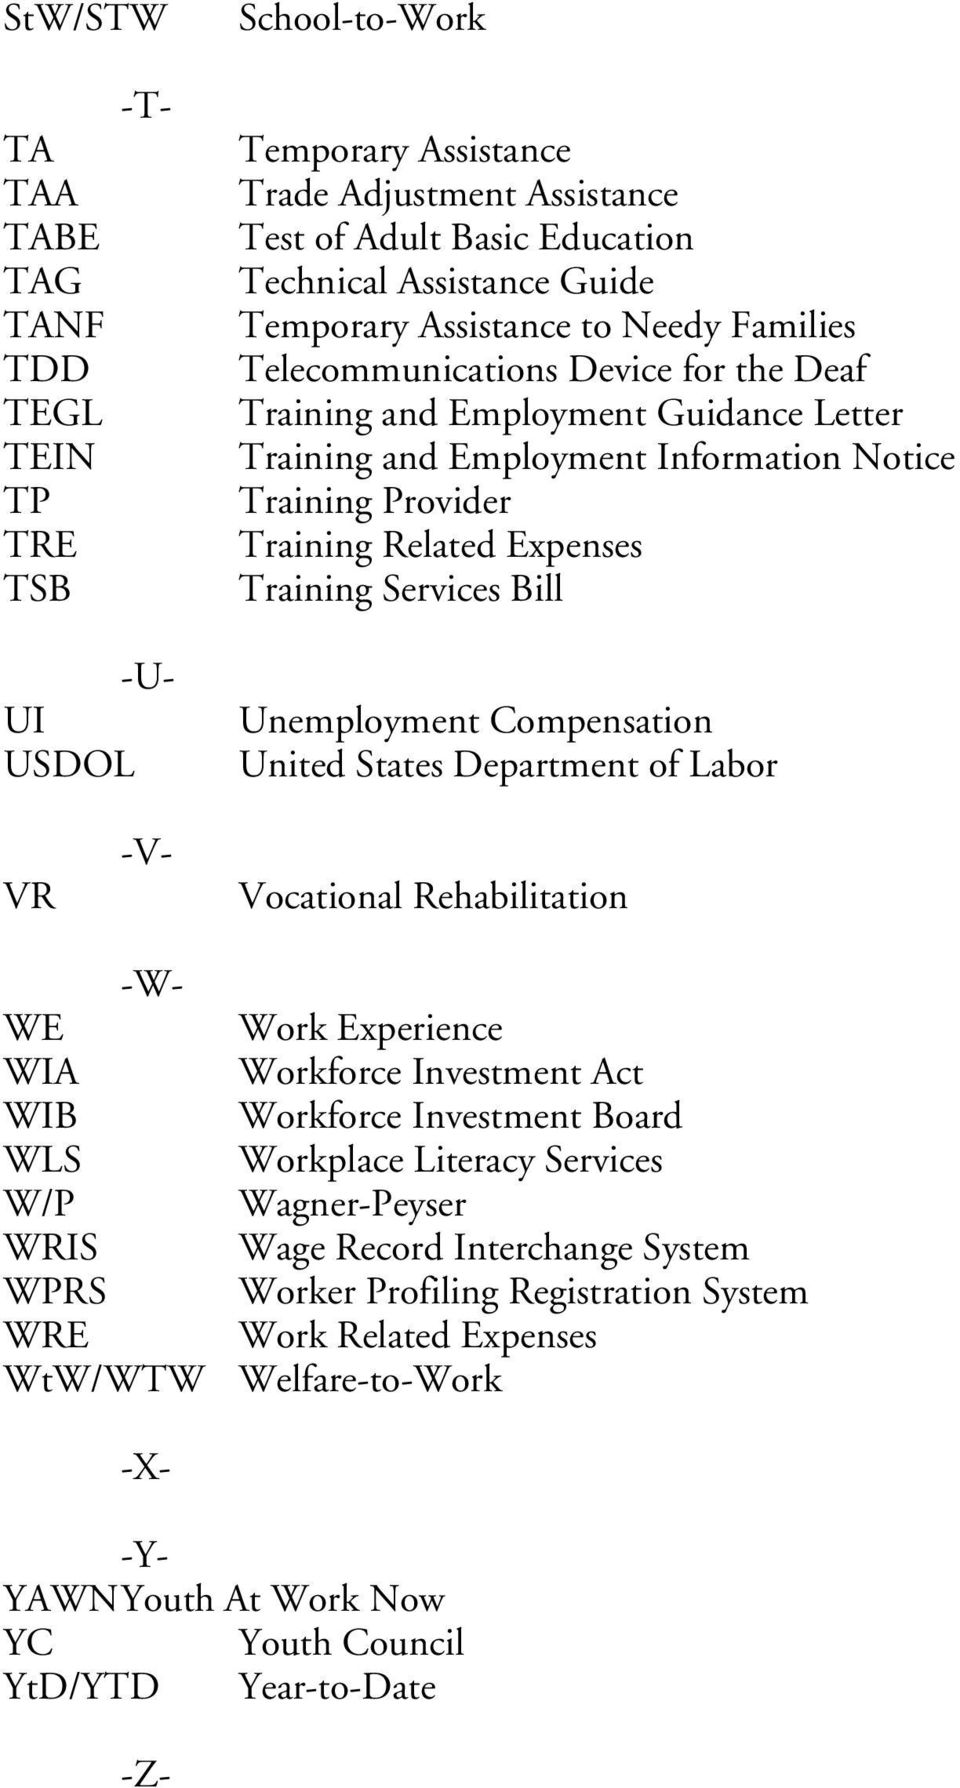 Services Bill -U- UI USDOL Unemployment Compensation United States Department of Labor VR -V- Vocational Rehabilitation -W- WE Work Experience WIA Workforce Investment Act WIB Workforce Investment